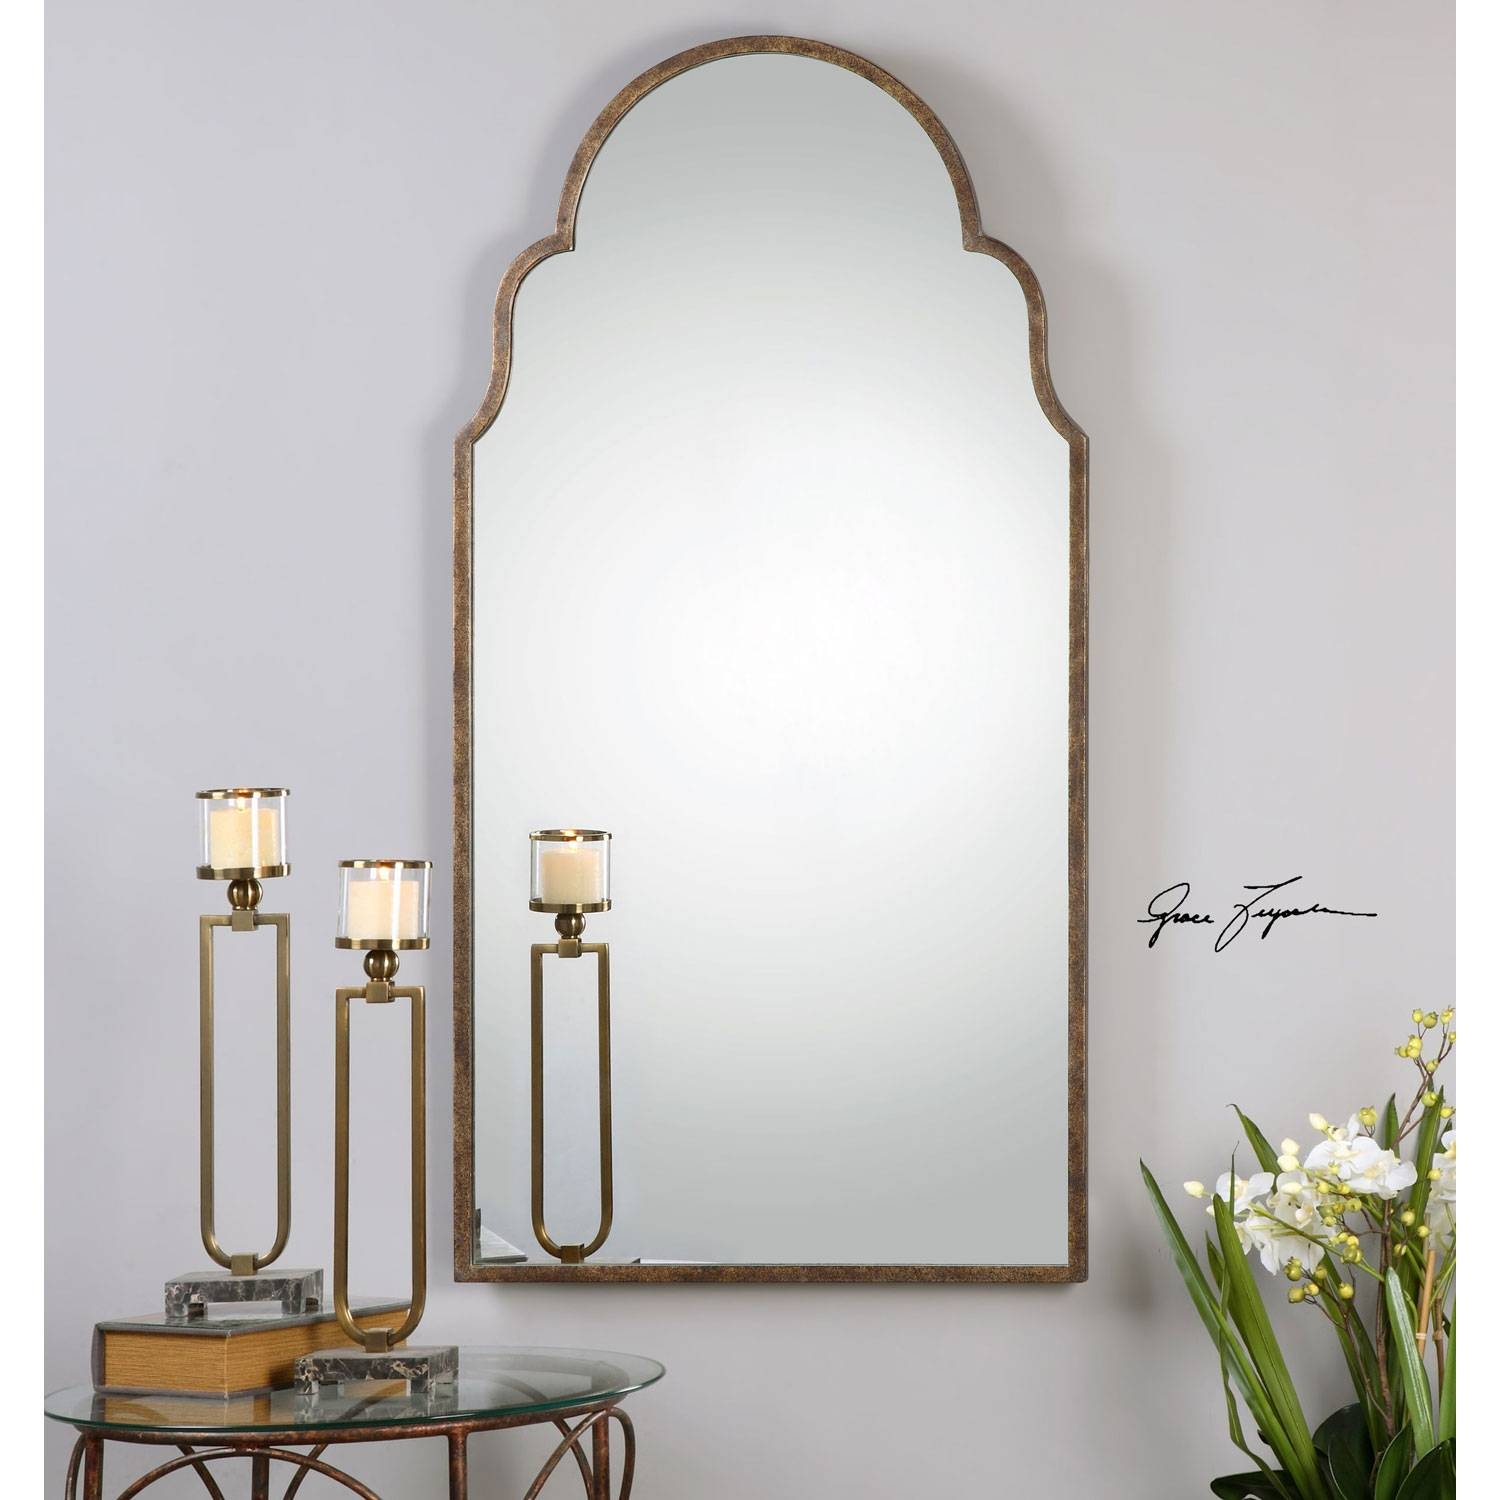 Brayden Rust Bronze Arch Mirror Uttermost Wall Mirror Mirrors Home for Arched Mirrors (Image 8 of 25)